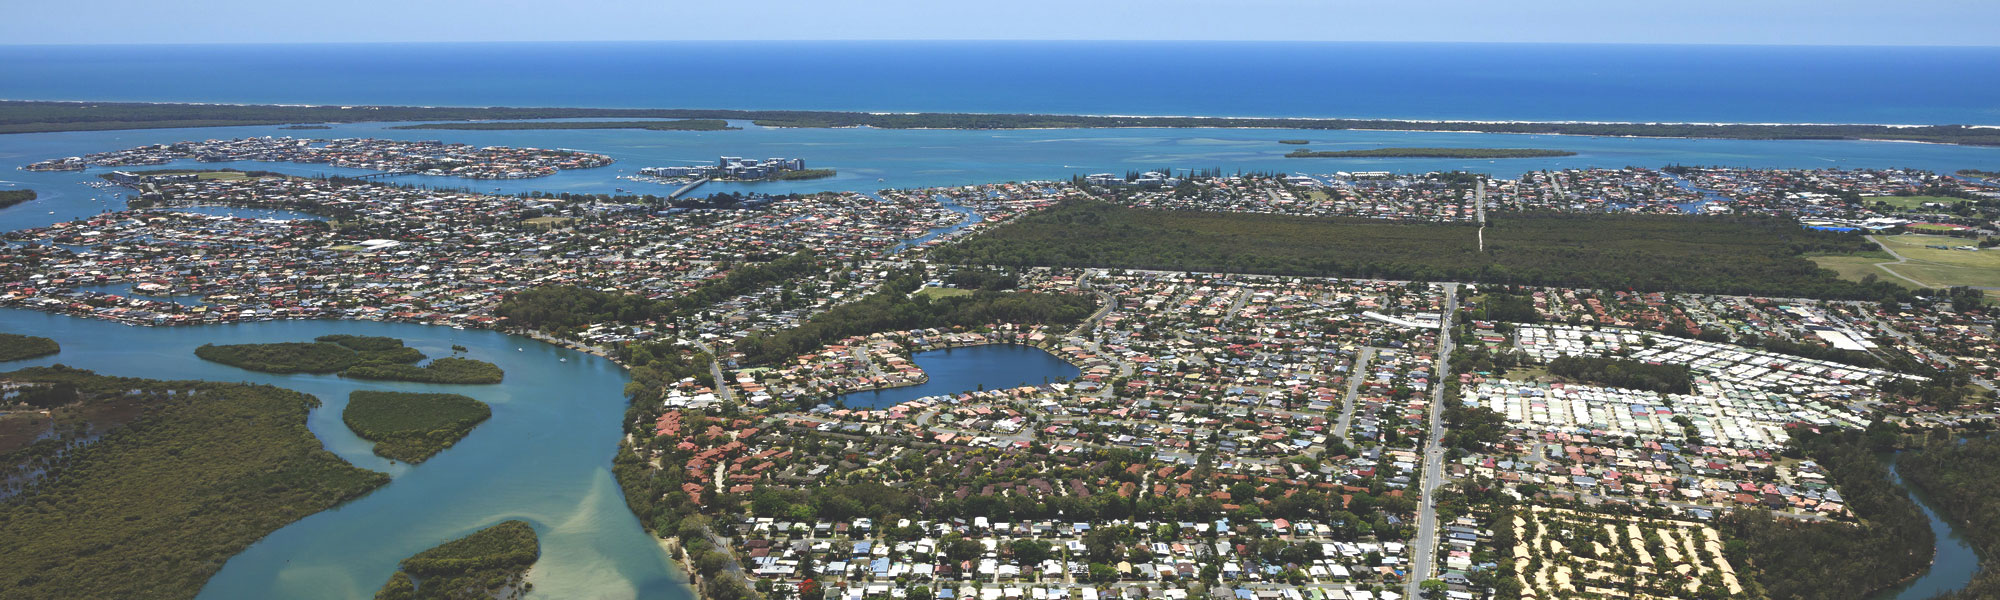 Living Gems Gold Coast aerial photo